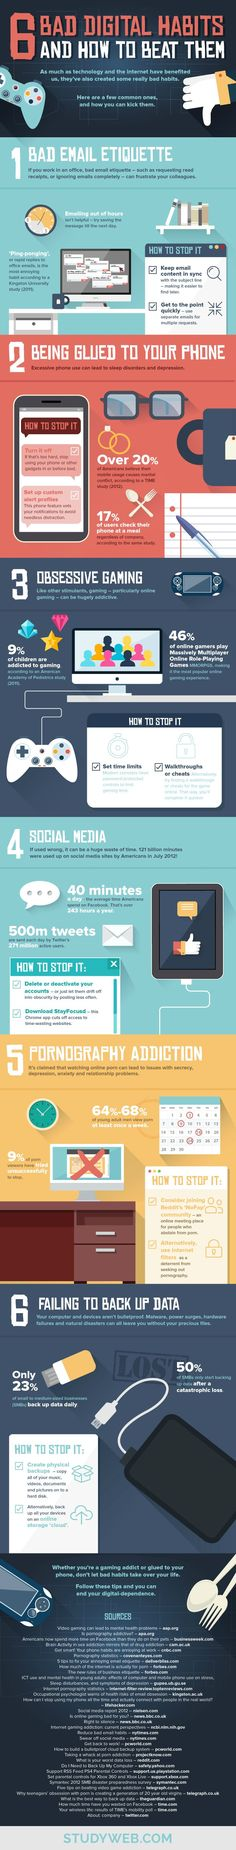 6 bad digital habits (and how to stop them) - infographic